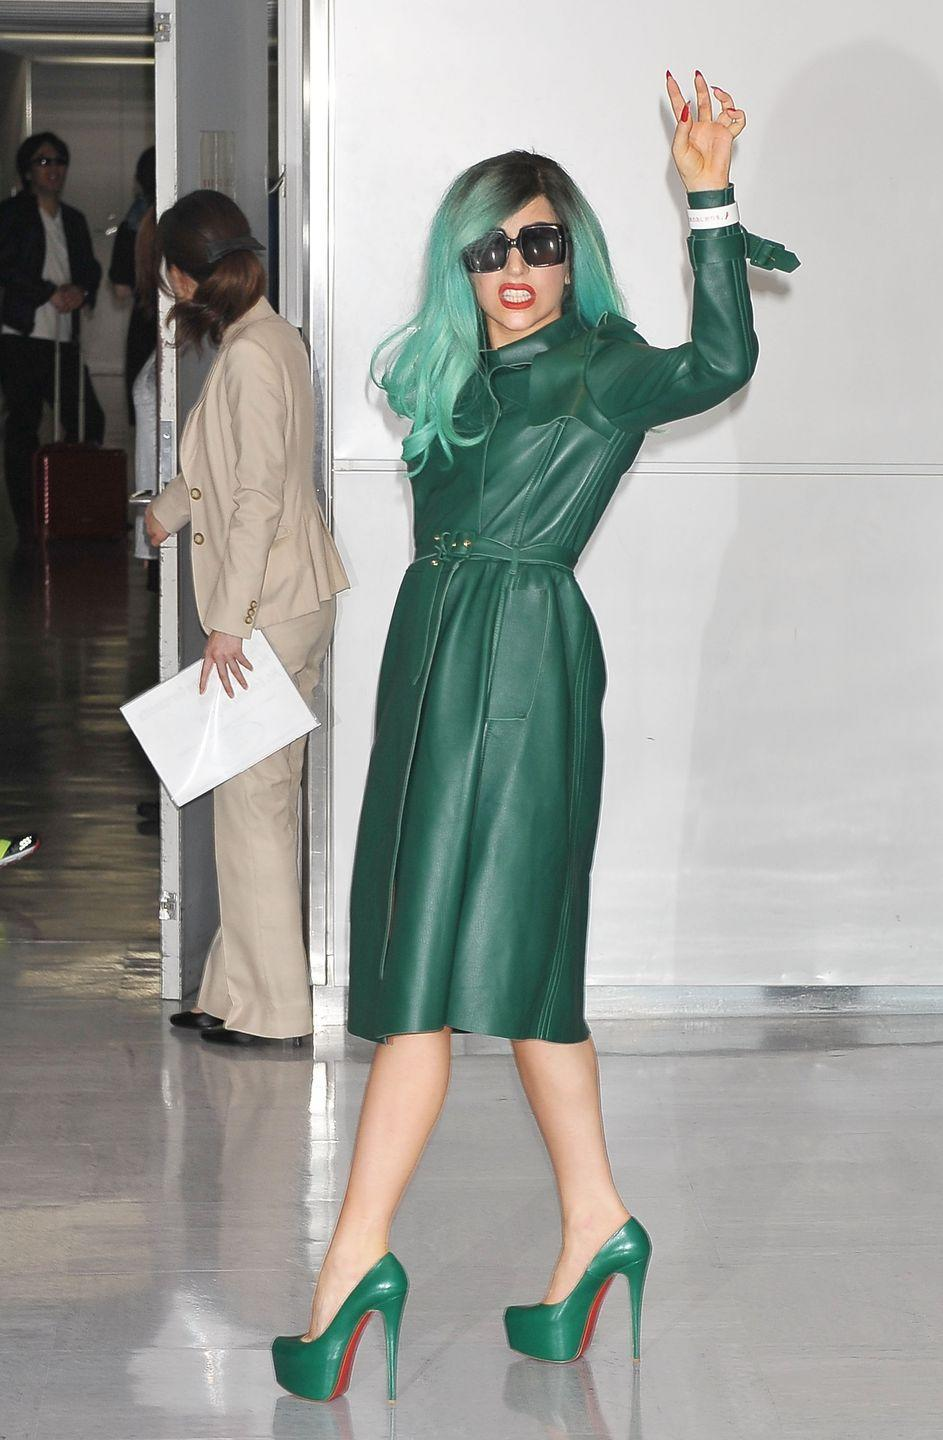 <p><strong>Lady Gaga, 2011: </strong>At Tokyo's Narita airport in a monochrome look with maniacally high stilettos.</p>